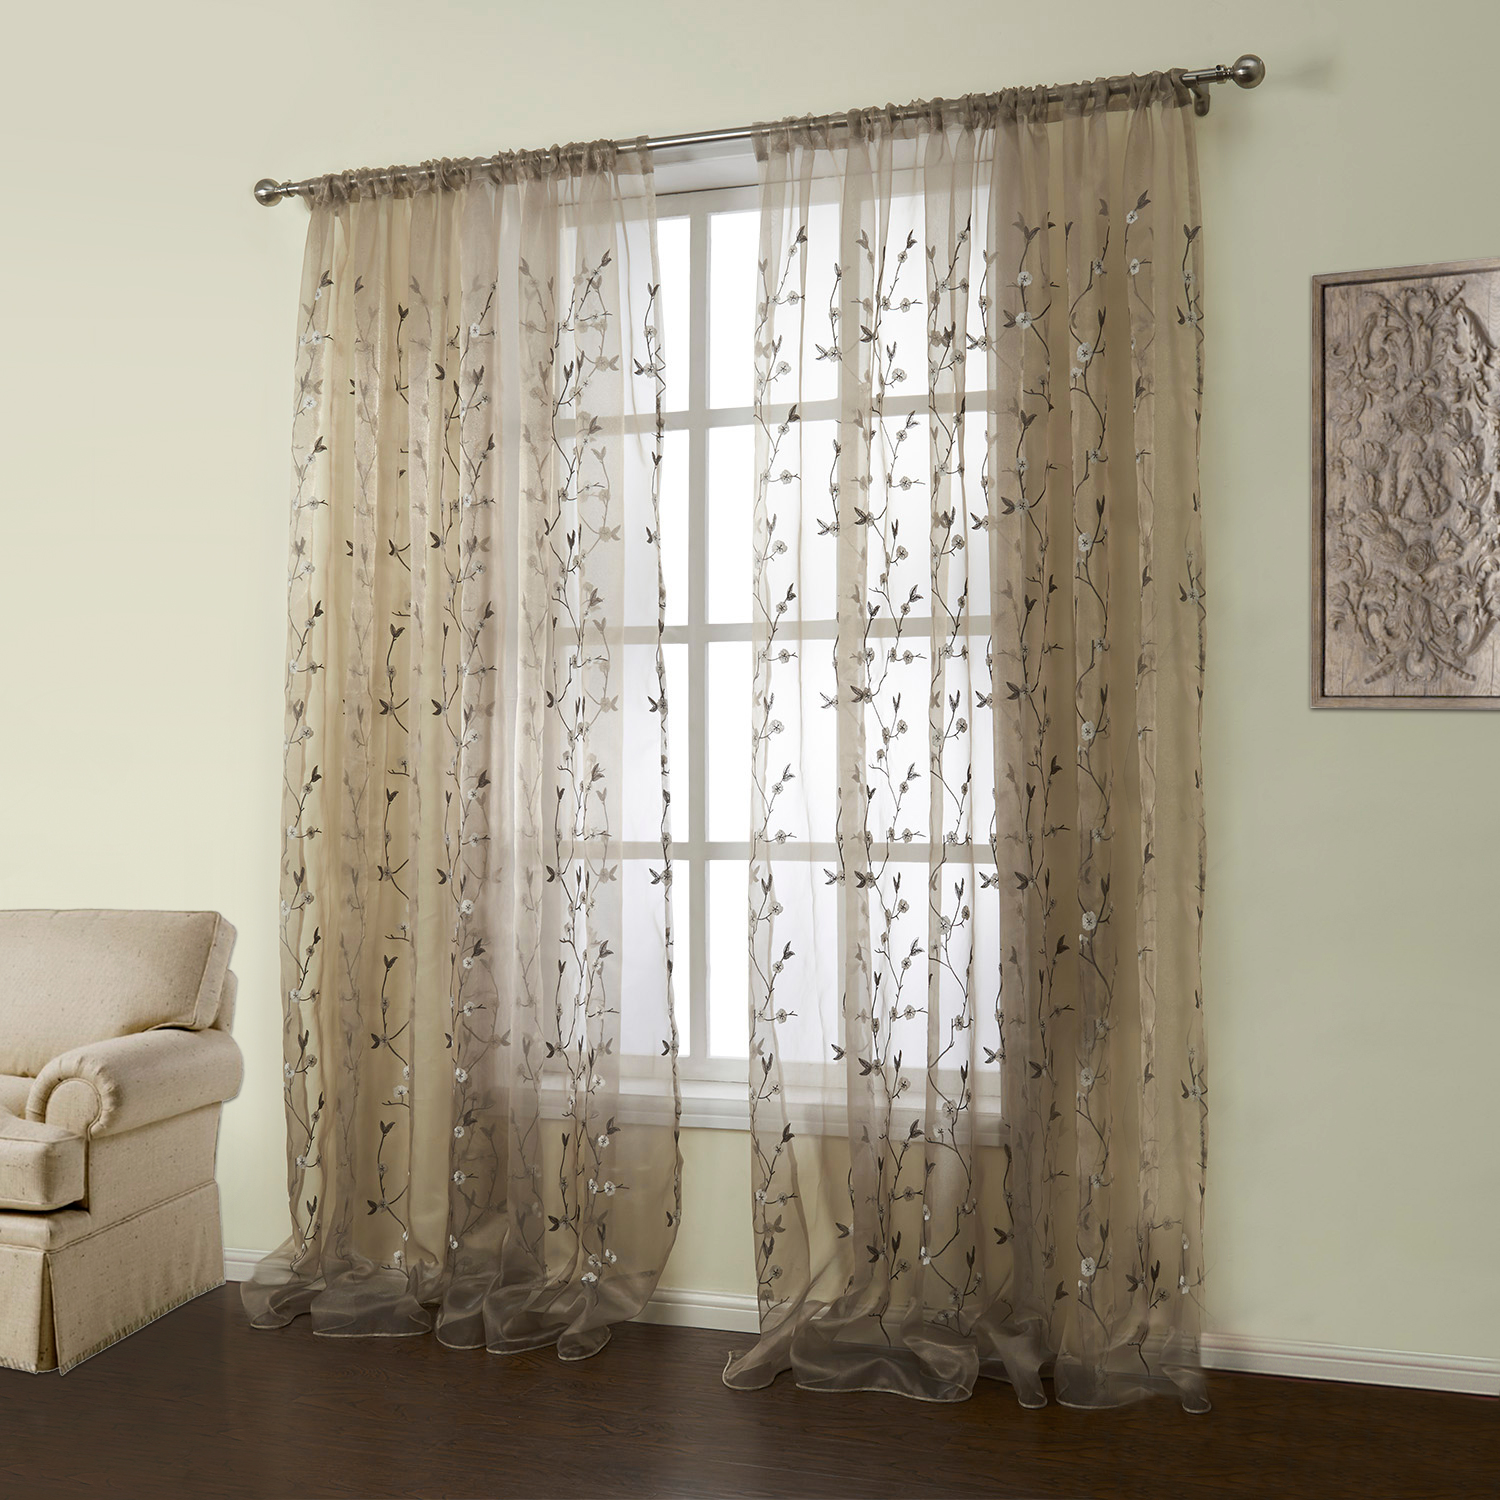 Urban Outfitters Curtains | Embroidered Curtains | Embroidered Panel Curtains